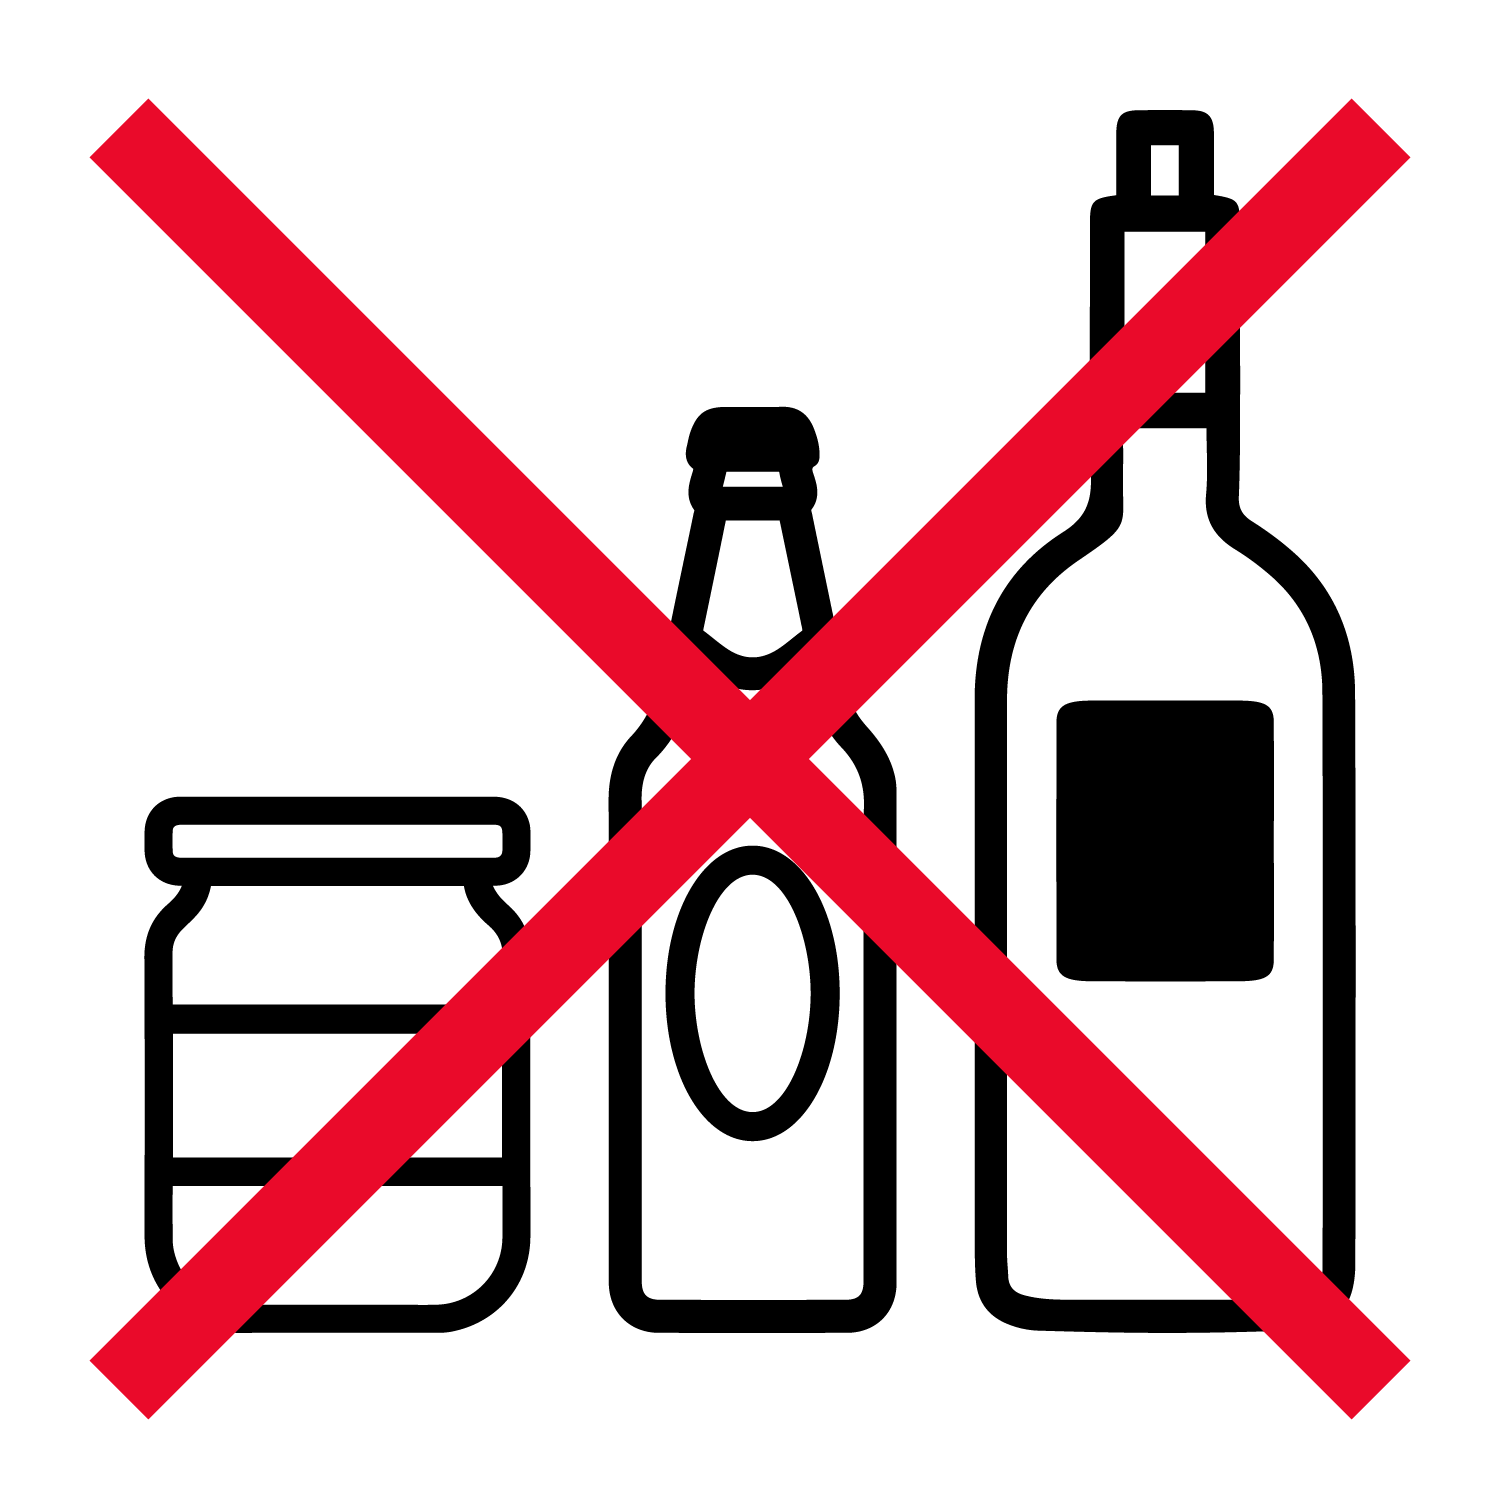 no glass bottles or jars